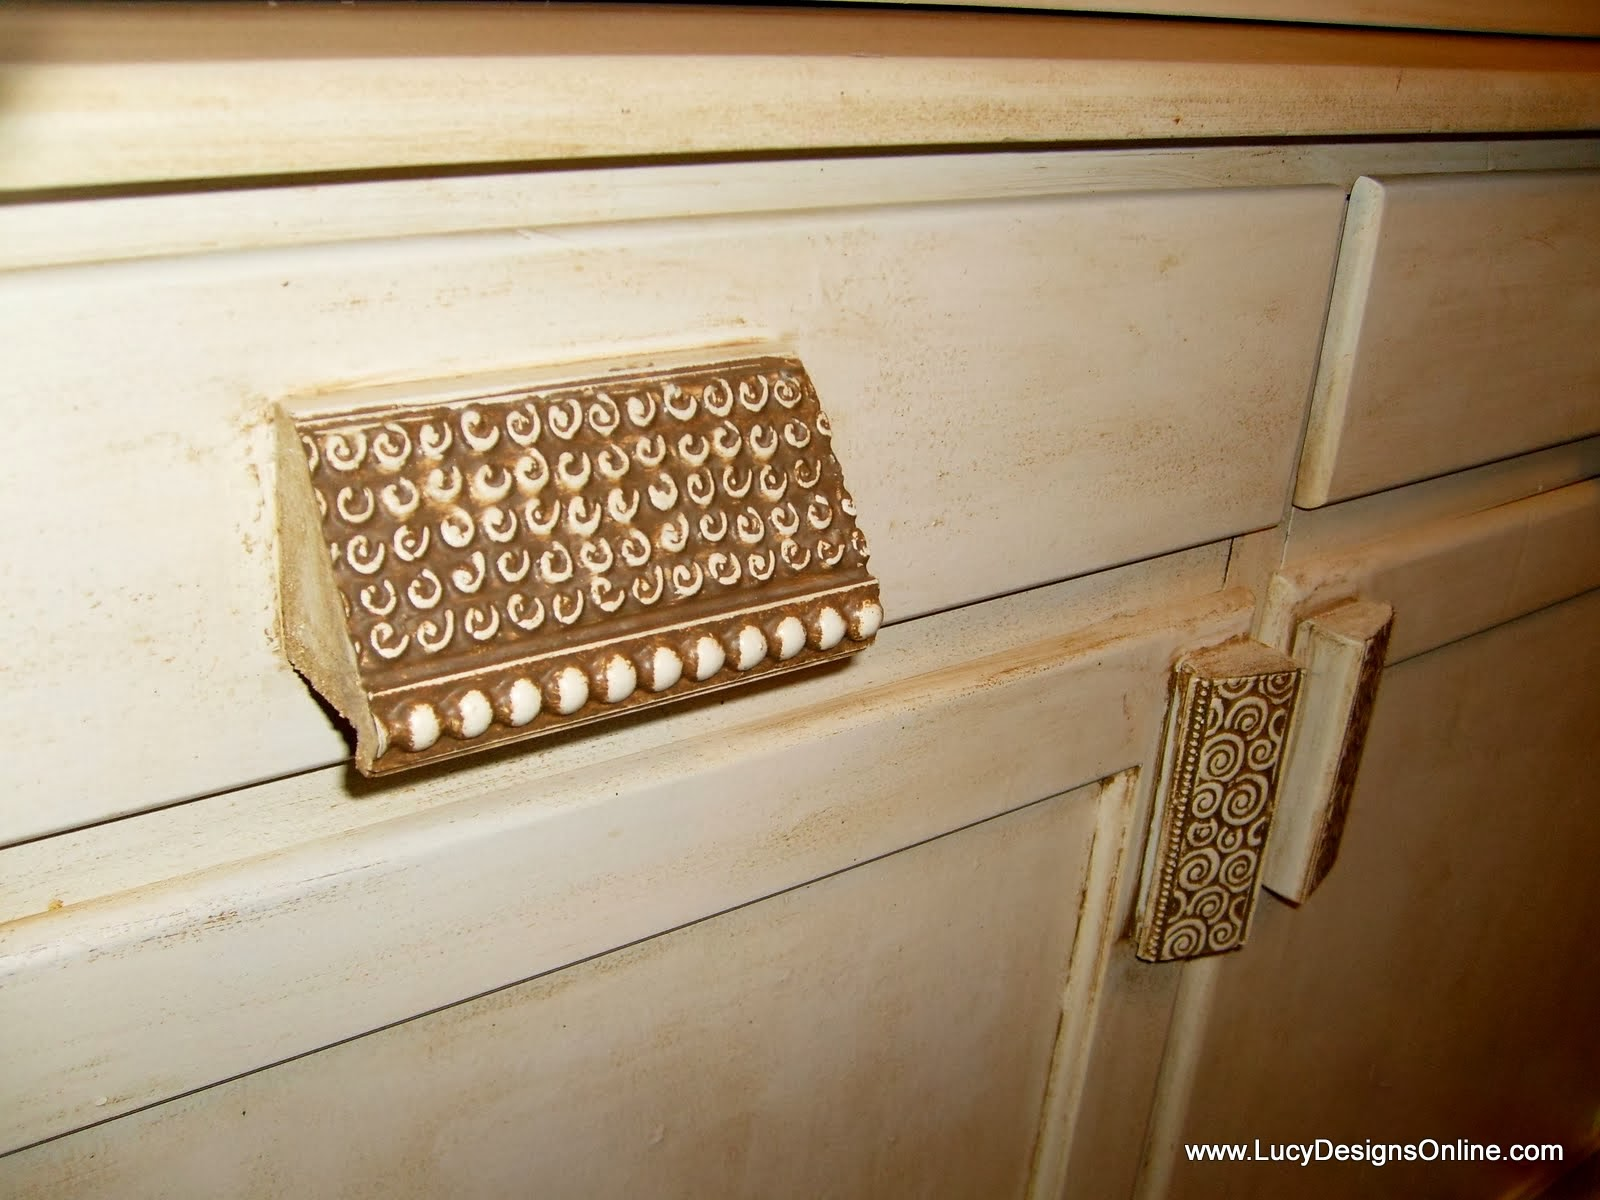 decorative molding as drawer pulls